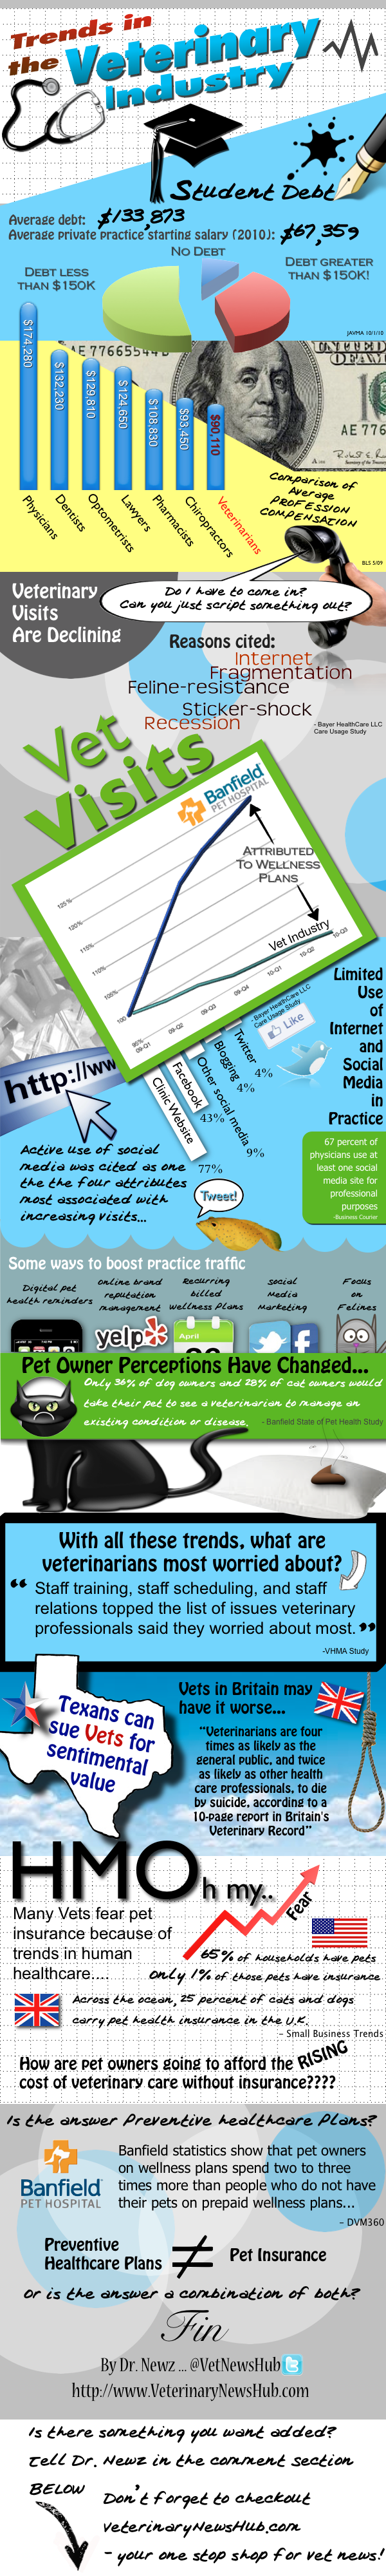 Trends in the Veterinary Industry Infographic